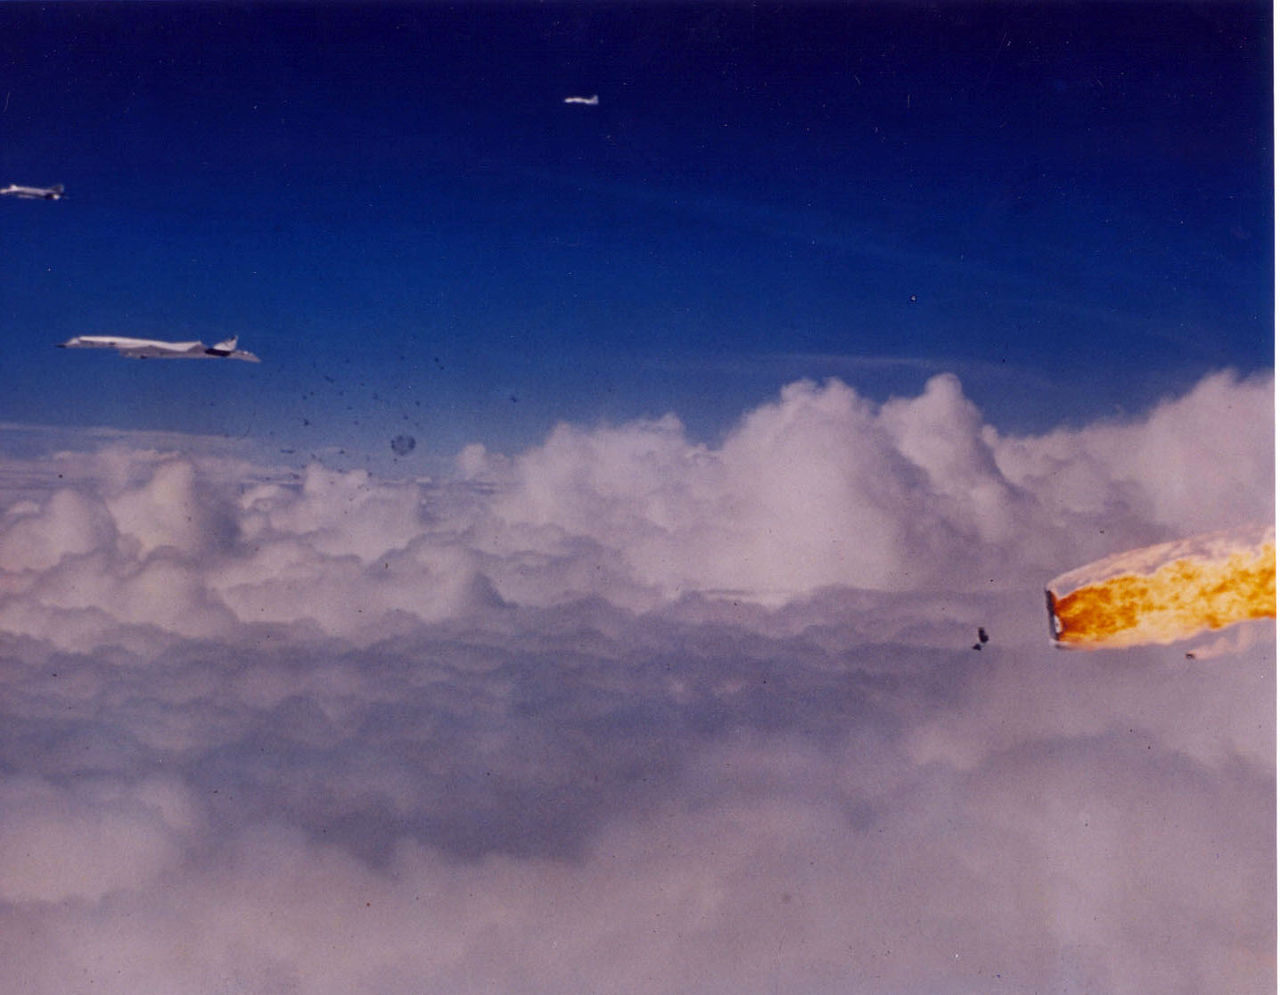 Valkyrie Down: the unsolved mysteries behind XB-70 AV2 Crash